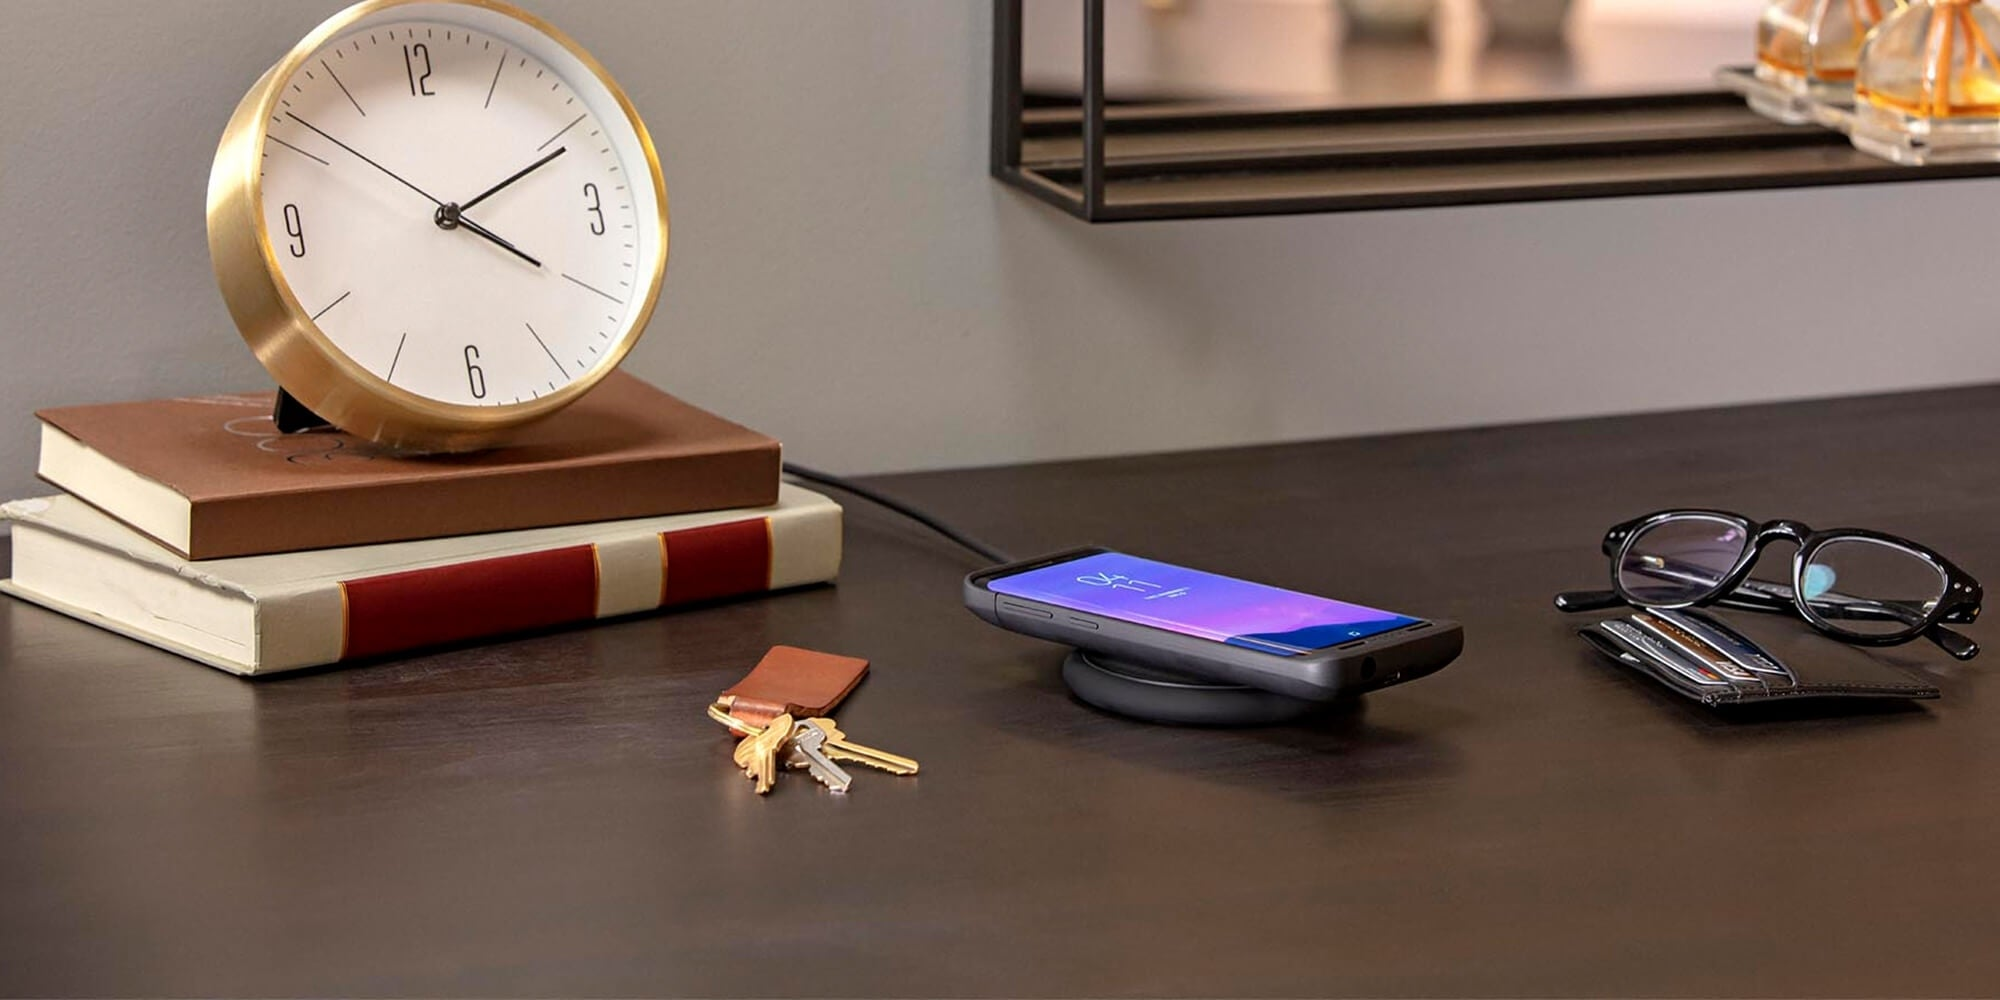 A phone charging on a table next to a clock, books, a wallet, keys, and reading glasses